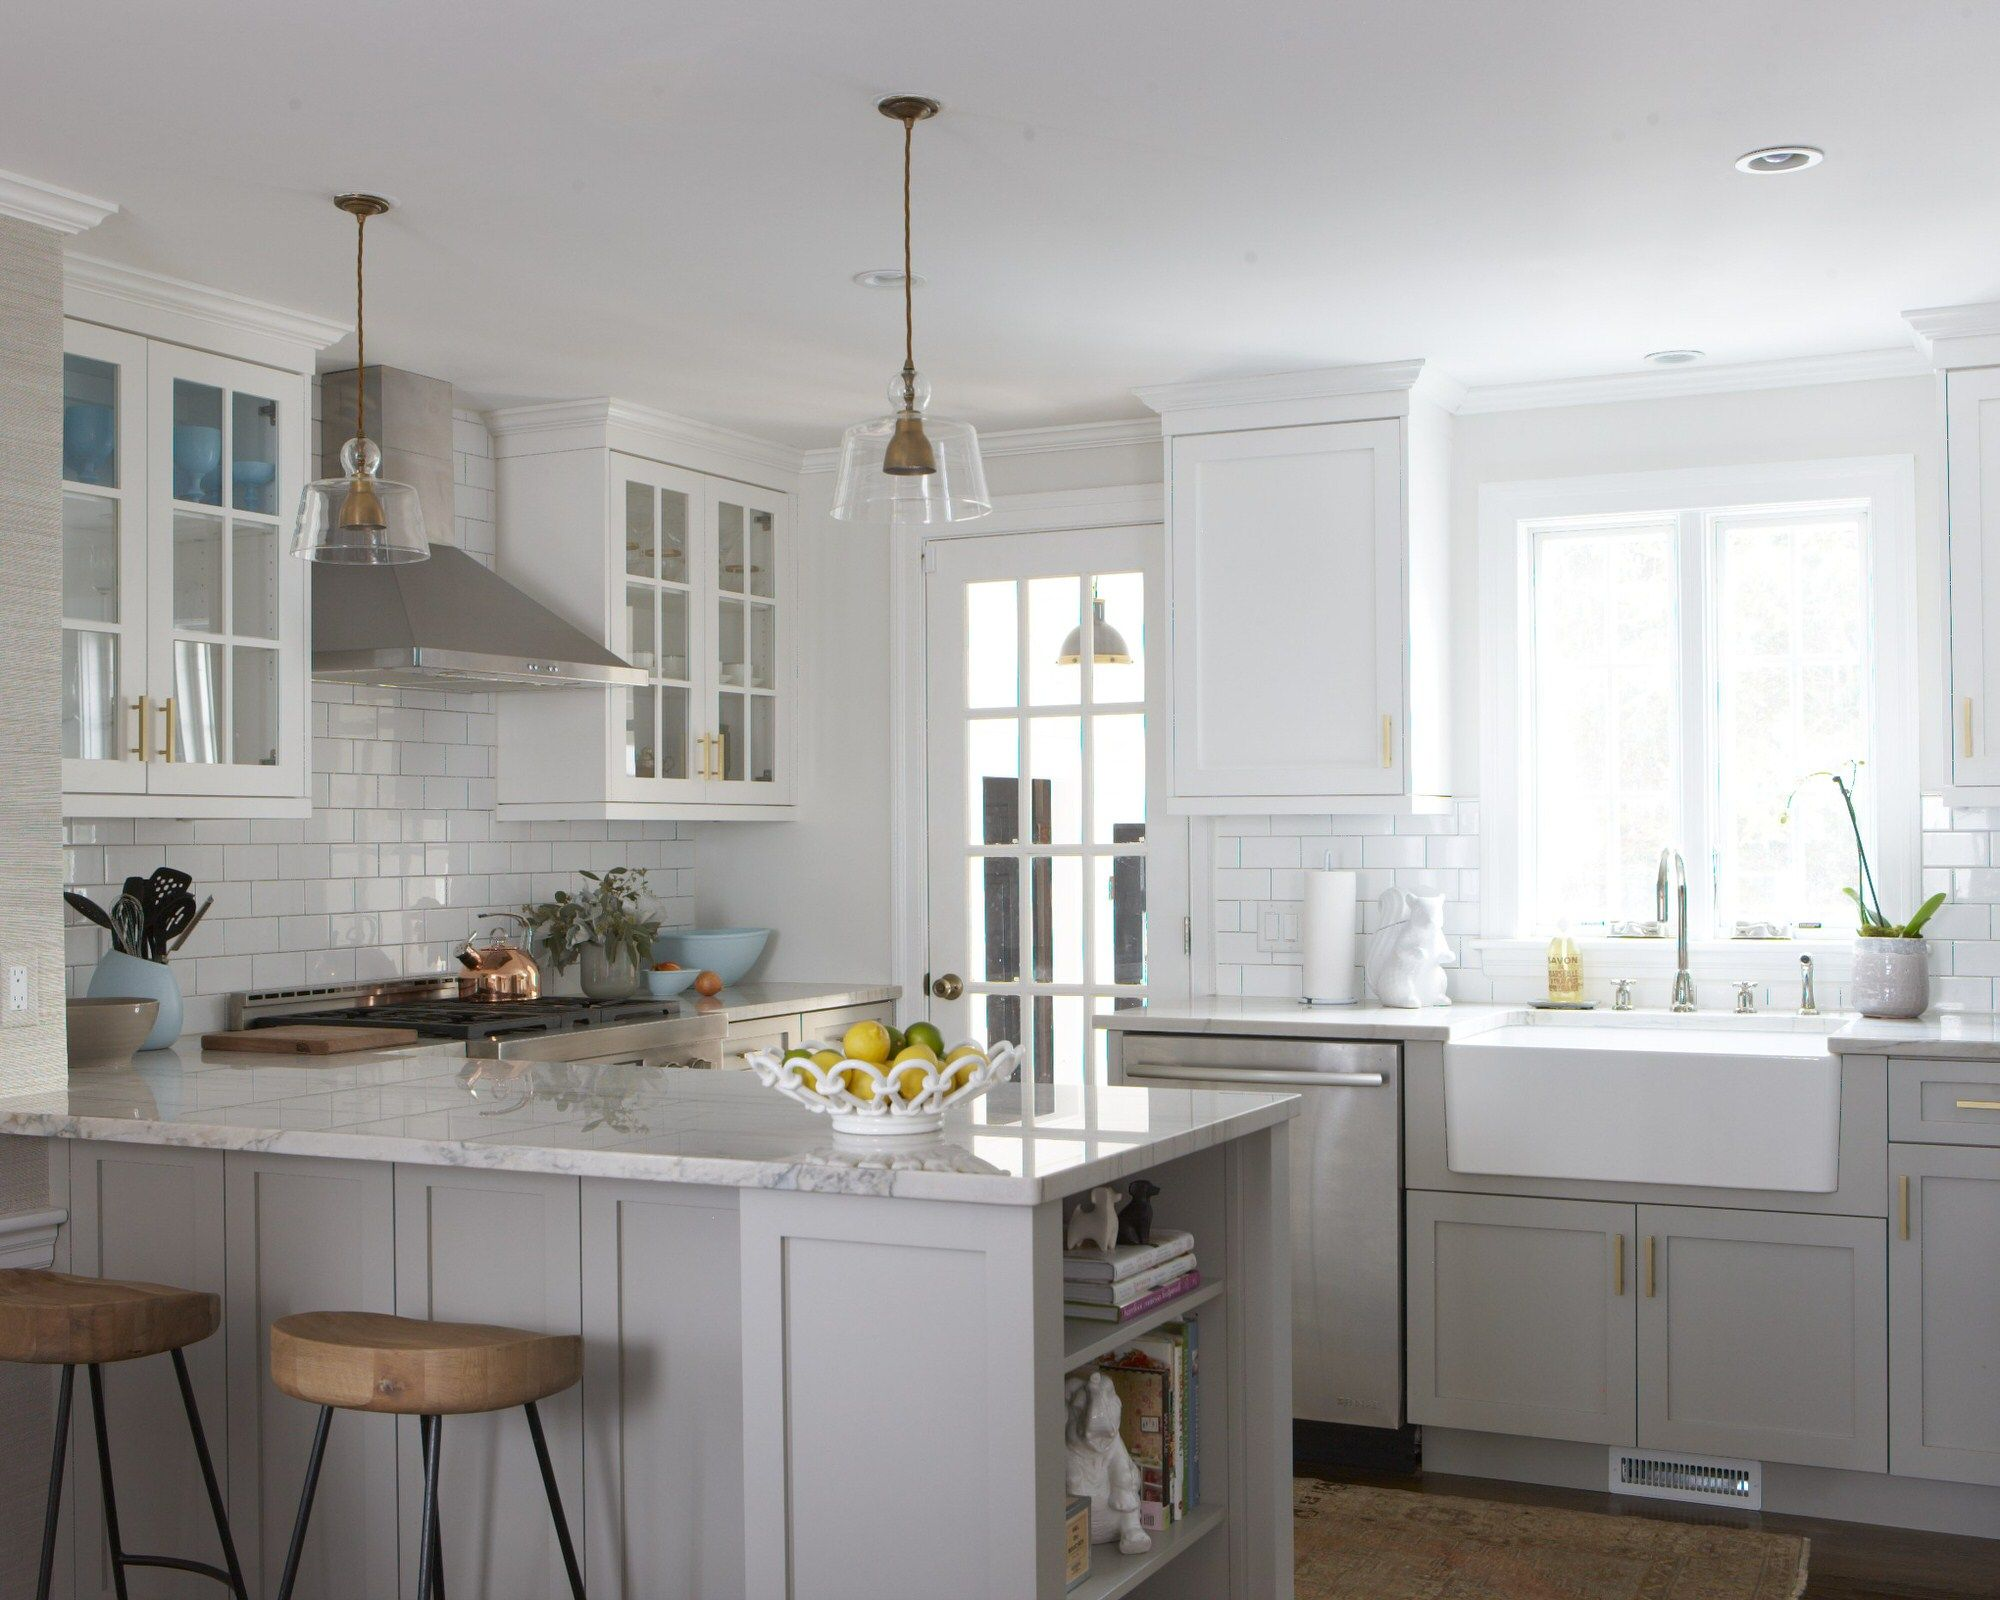 Classic Colonial | Kitchens | Pinterest | Colonial, Kitchens and House